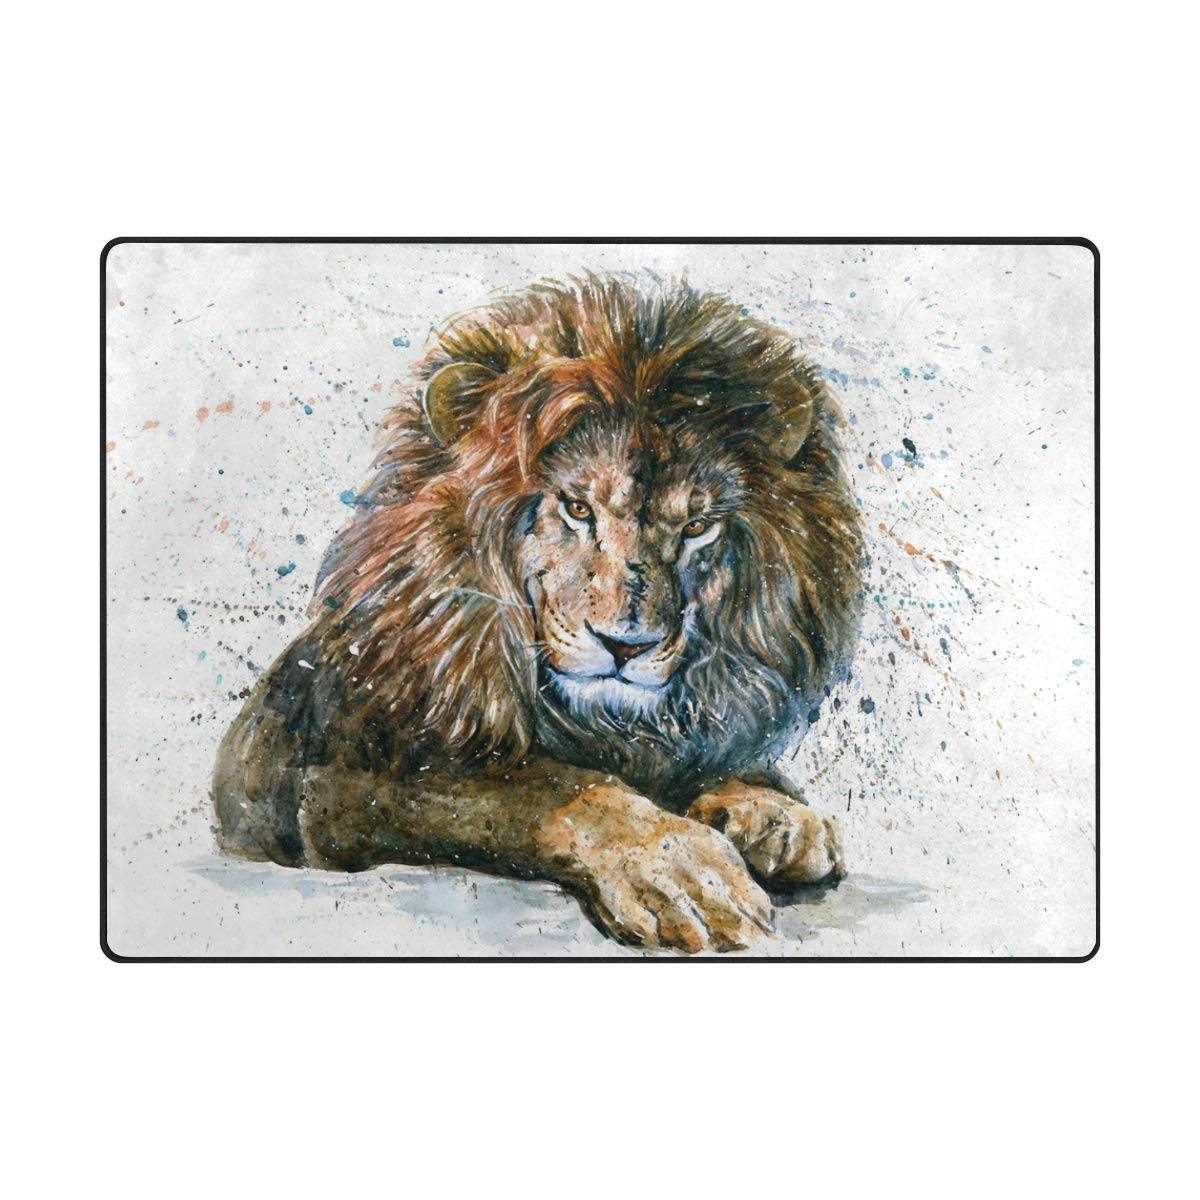 Vantaso Soft Foam Area Rugs Watercolor Lion Non Slip Play Mats for Kids Boys Girls Playing Room Living Room 80x58 inch